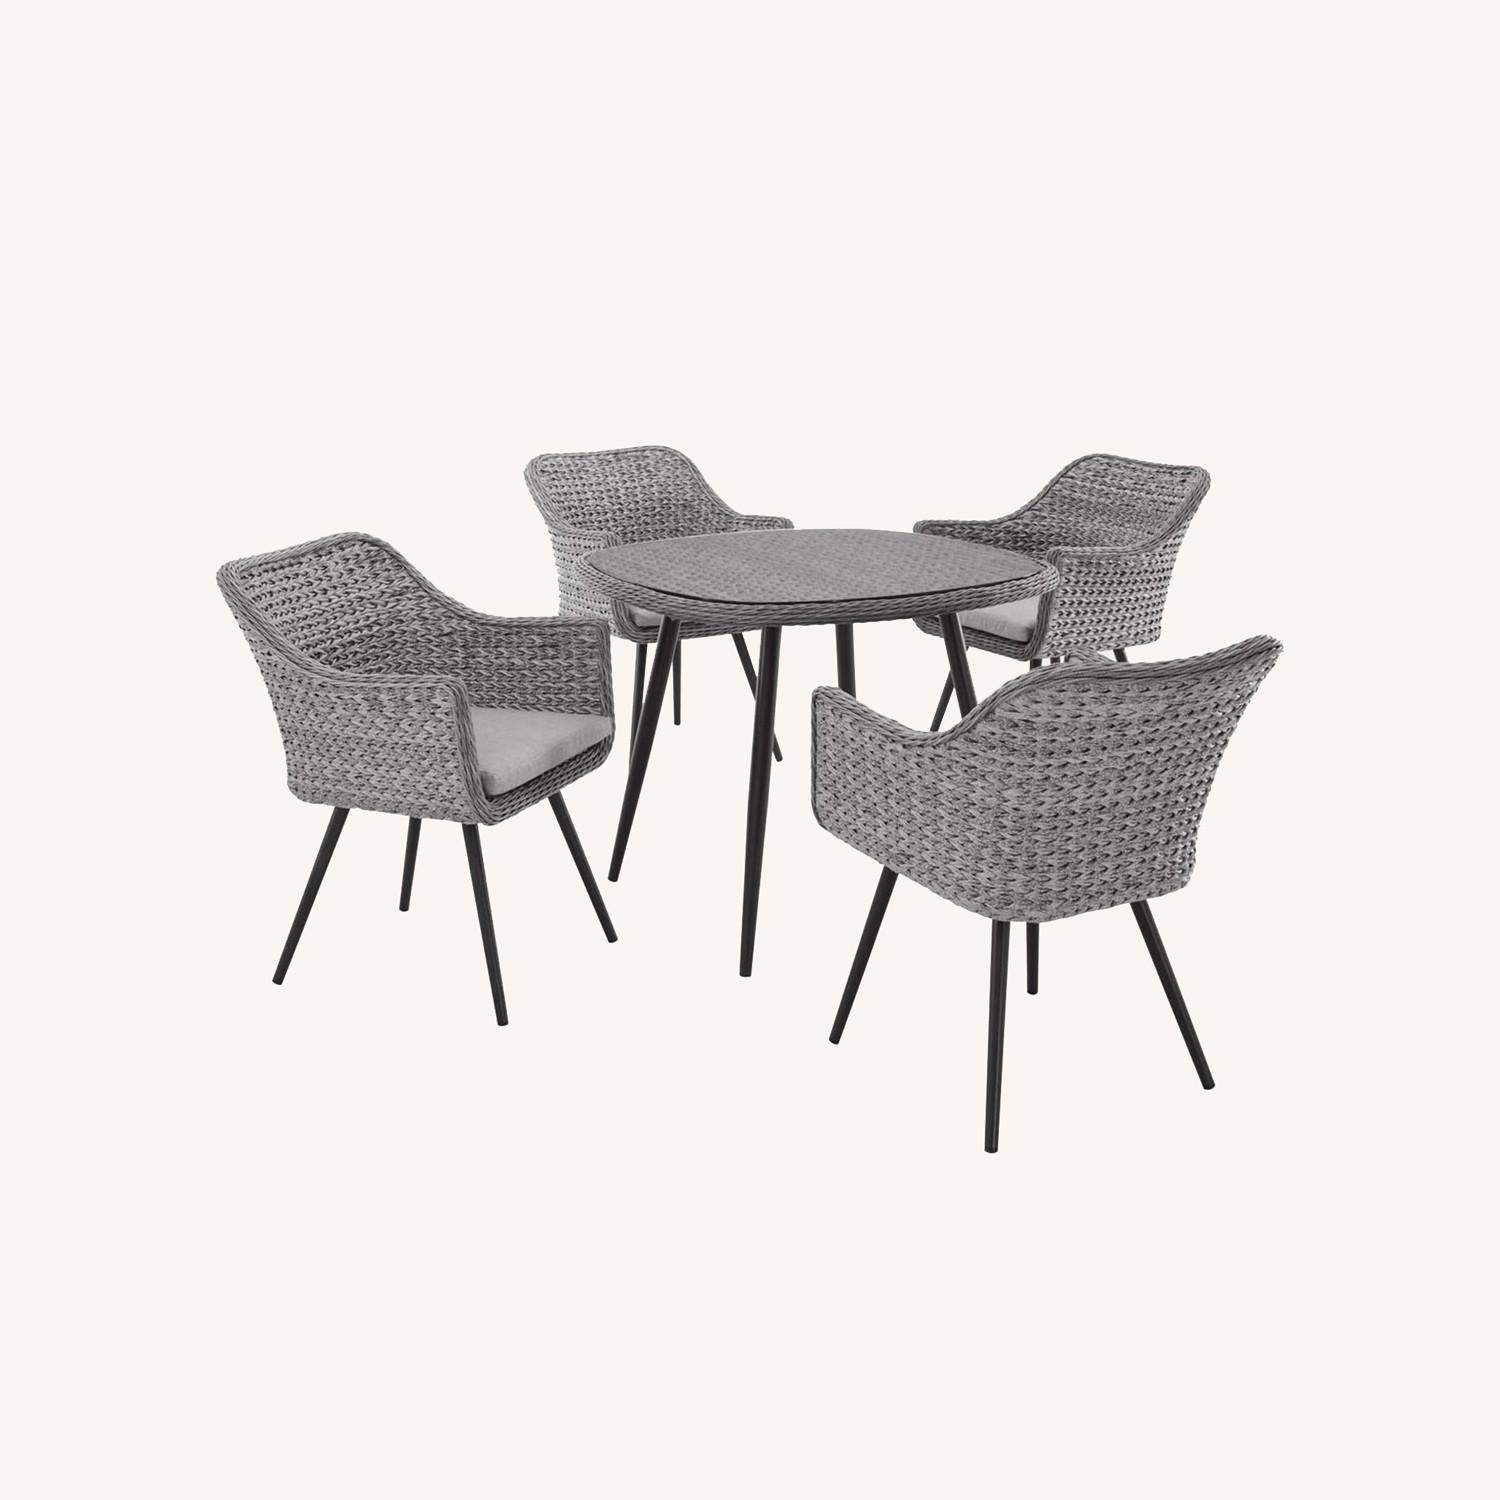 Modern 5-Piece Dining Set In Gray-On-Gray Tone - image-8